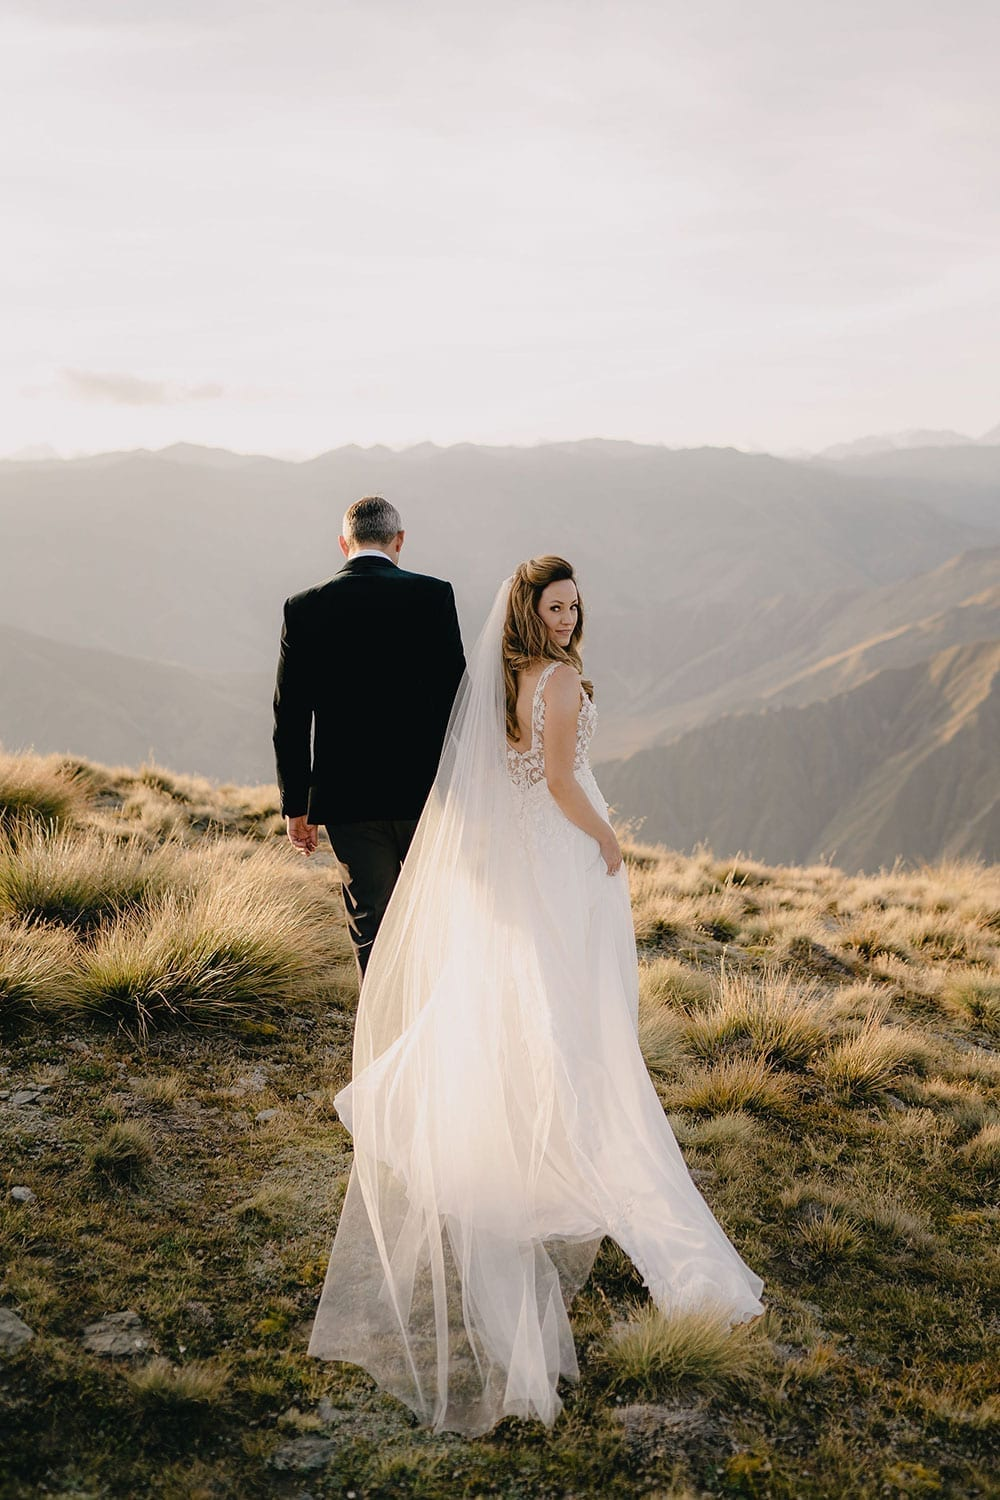 Vinka Design Features Real Weddings - bride in custom made gown, a beautiful intricate, sheer lace bodice, with a flowing, detachable, silk chiffon and tulle overskirt. The skirt had hand appliqued lace strategically placed throughout and trailing up from the train. Walking with groom looking back along mountain in NZ